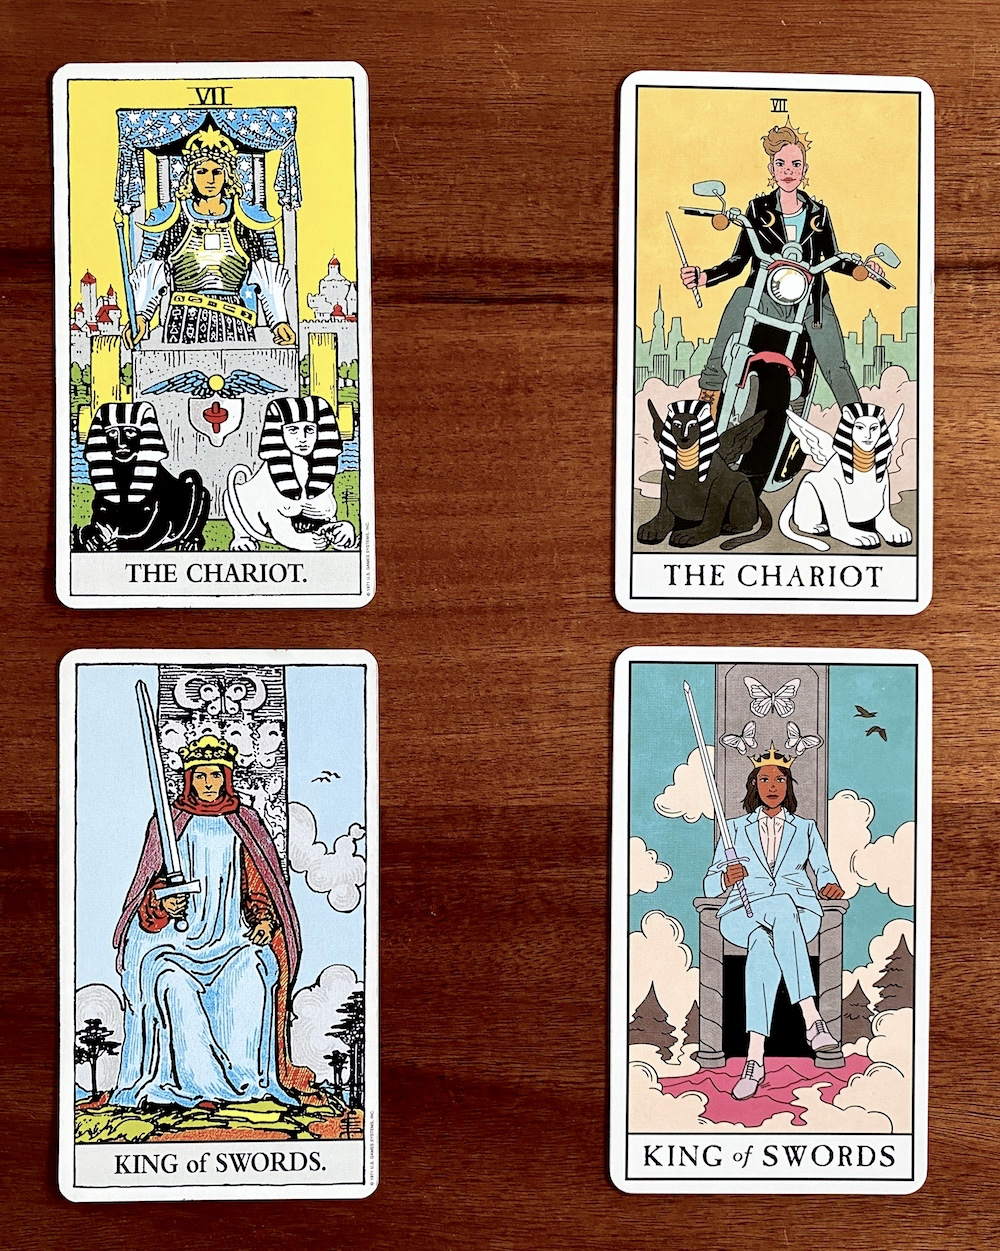 The Modern Witch Tarot Deck is a fresh, multicultural, more inclusive, and millenHow to Choose a Tarot Deck for Beginners | Happy As Annie - nial-friendly update to the classic Rider-Waite tarot deck. (The Chariot and King of Swords tarot cards from two different decks side by side)